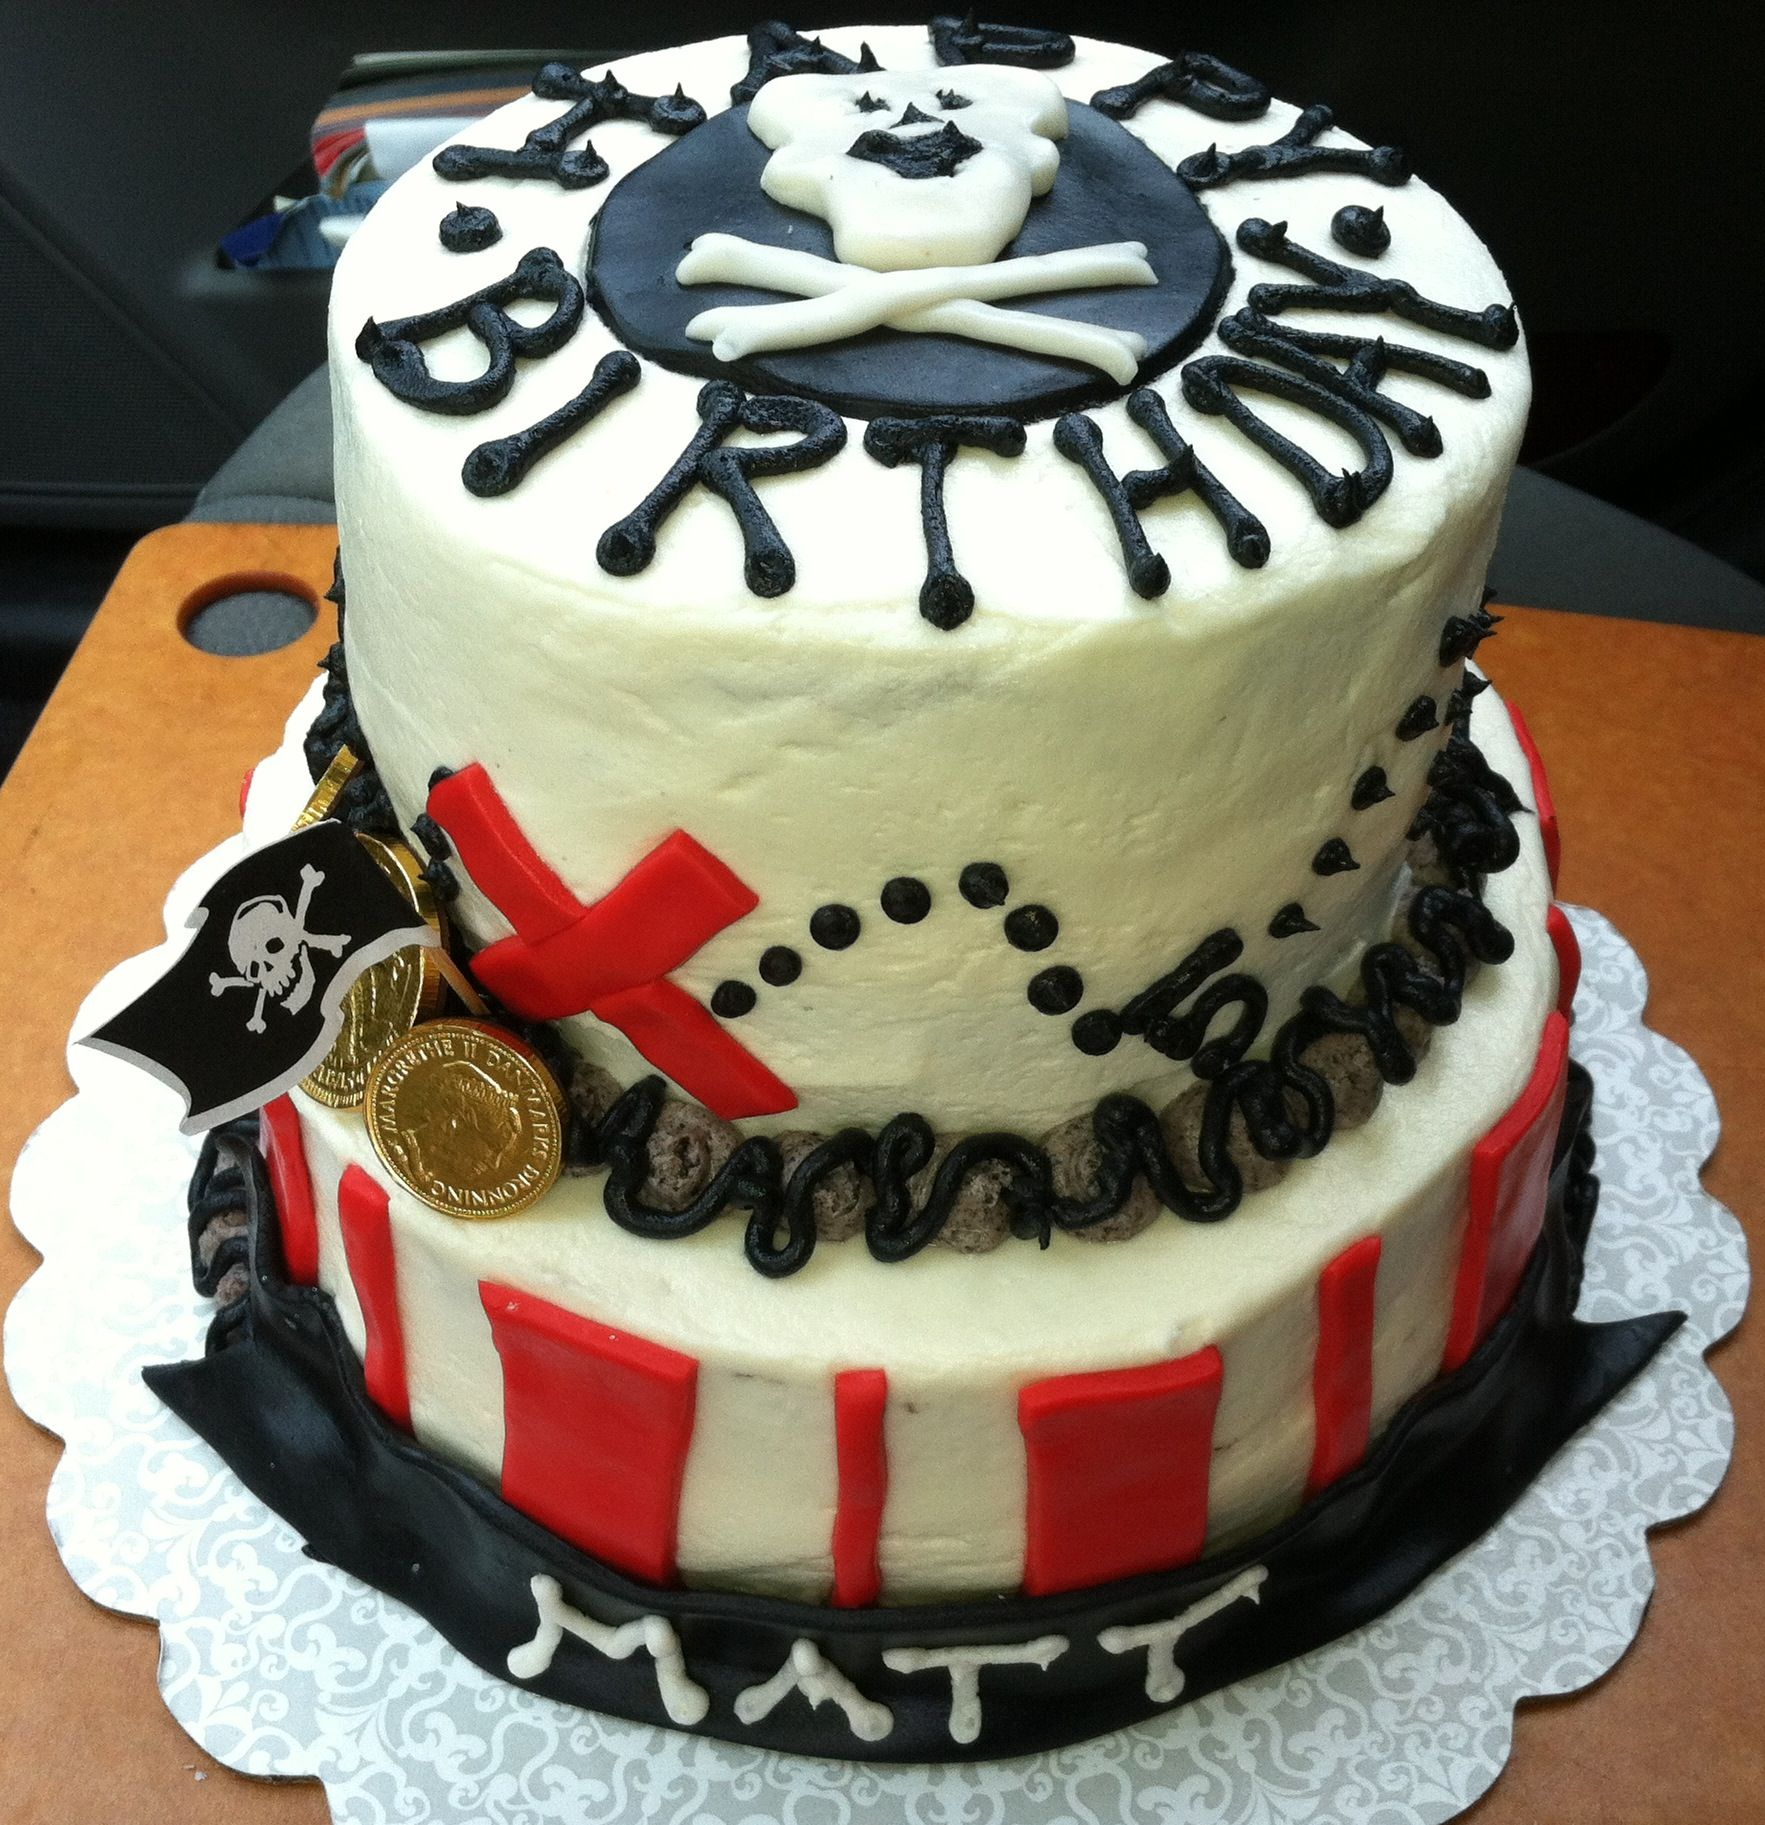 Now thats some sweet pirate loot cake creative cakes